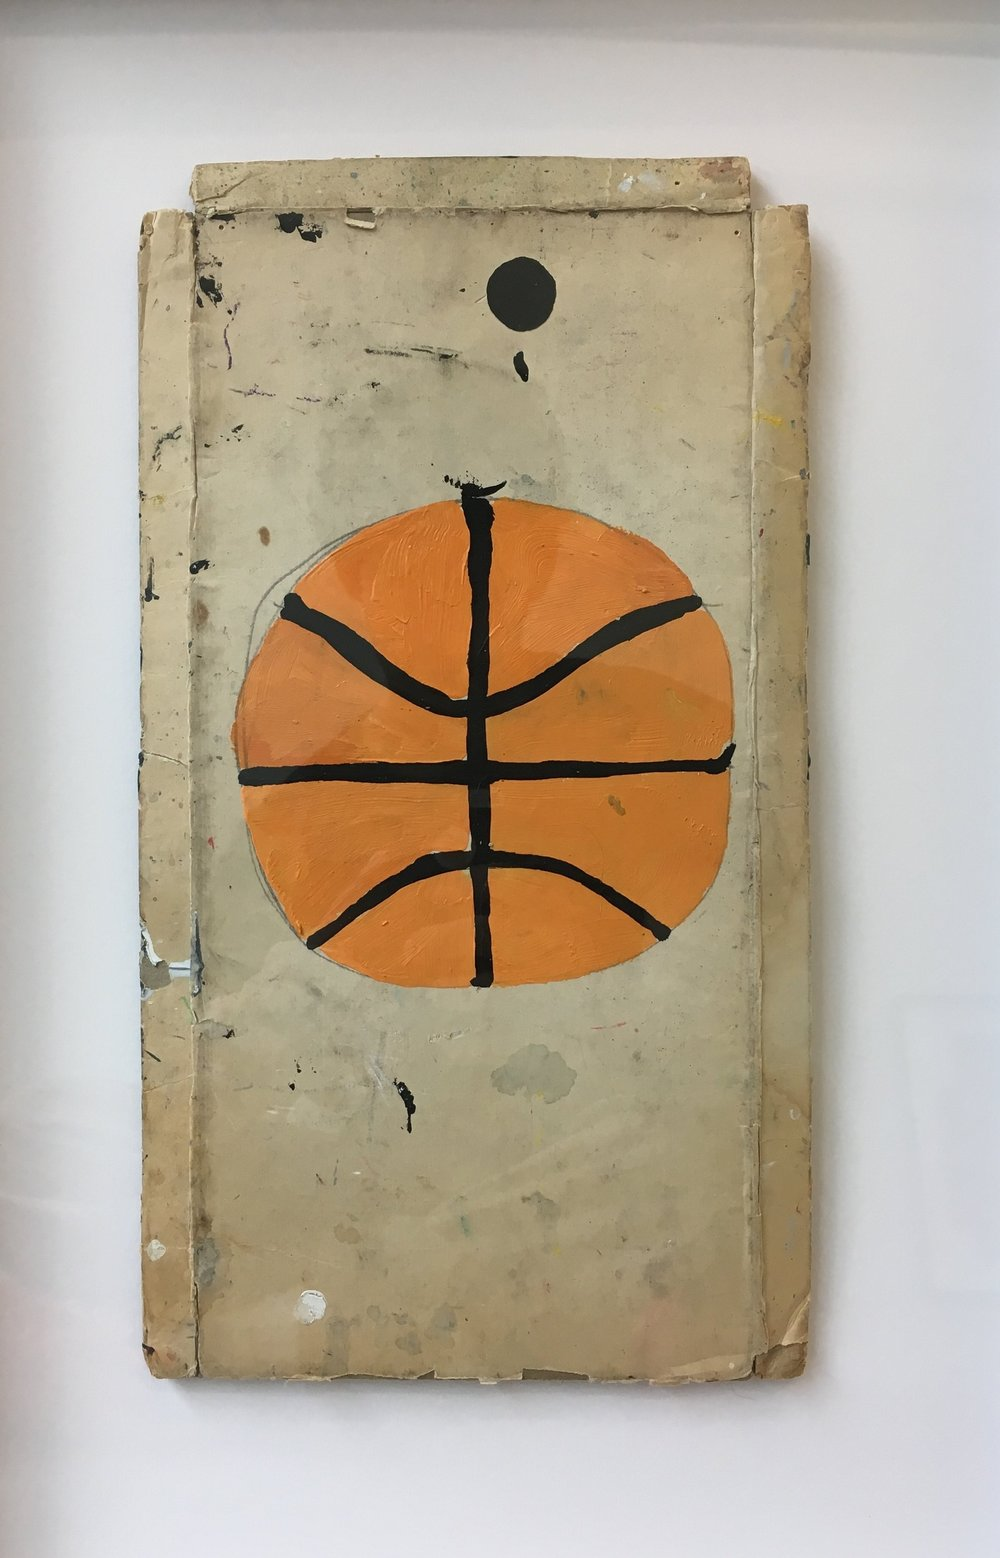 Romas Astrauskas, Untitled (Basketball), 2017, acrylic on cardboard, 12 X 6.75 inches (unframed), 18.5 X 13 inches (framed)